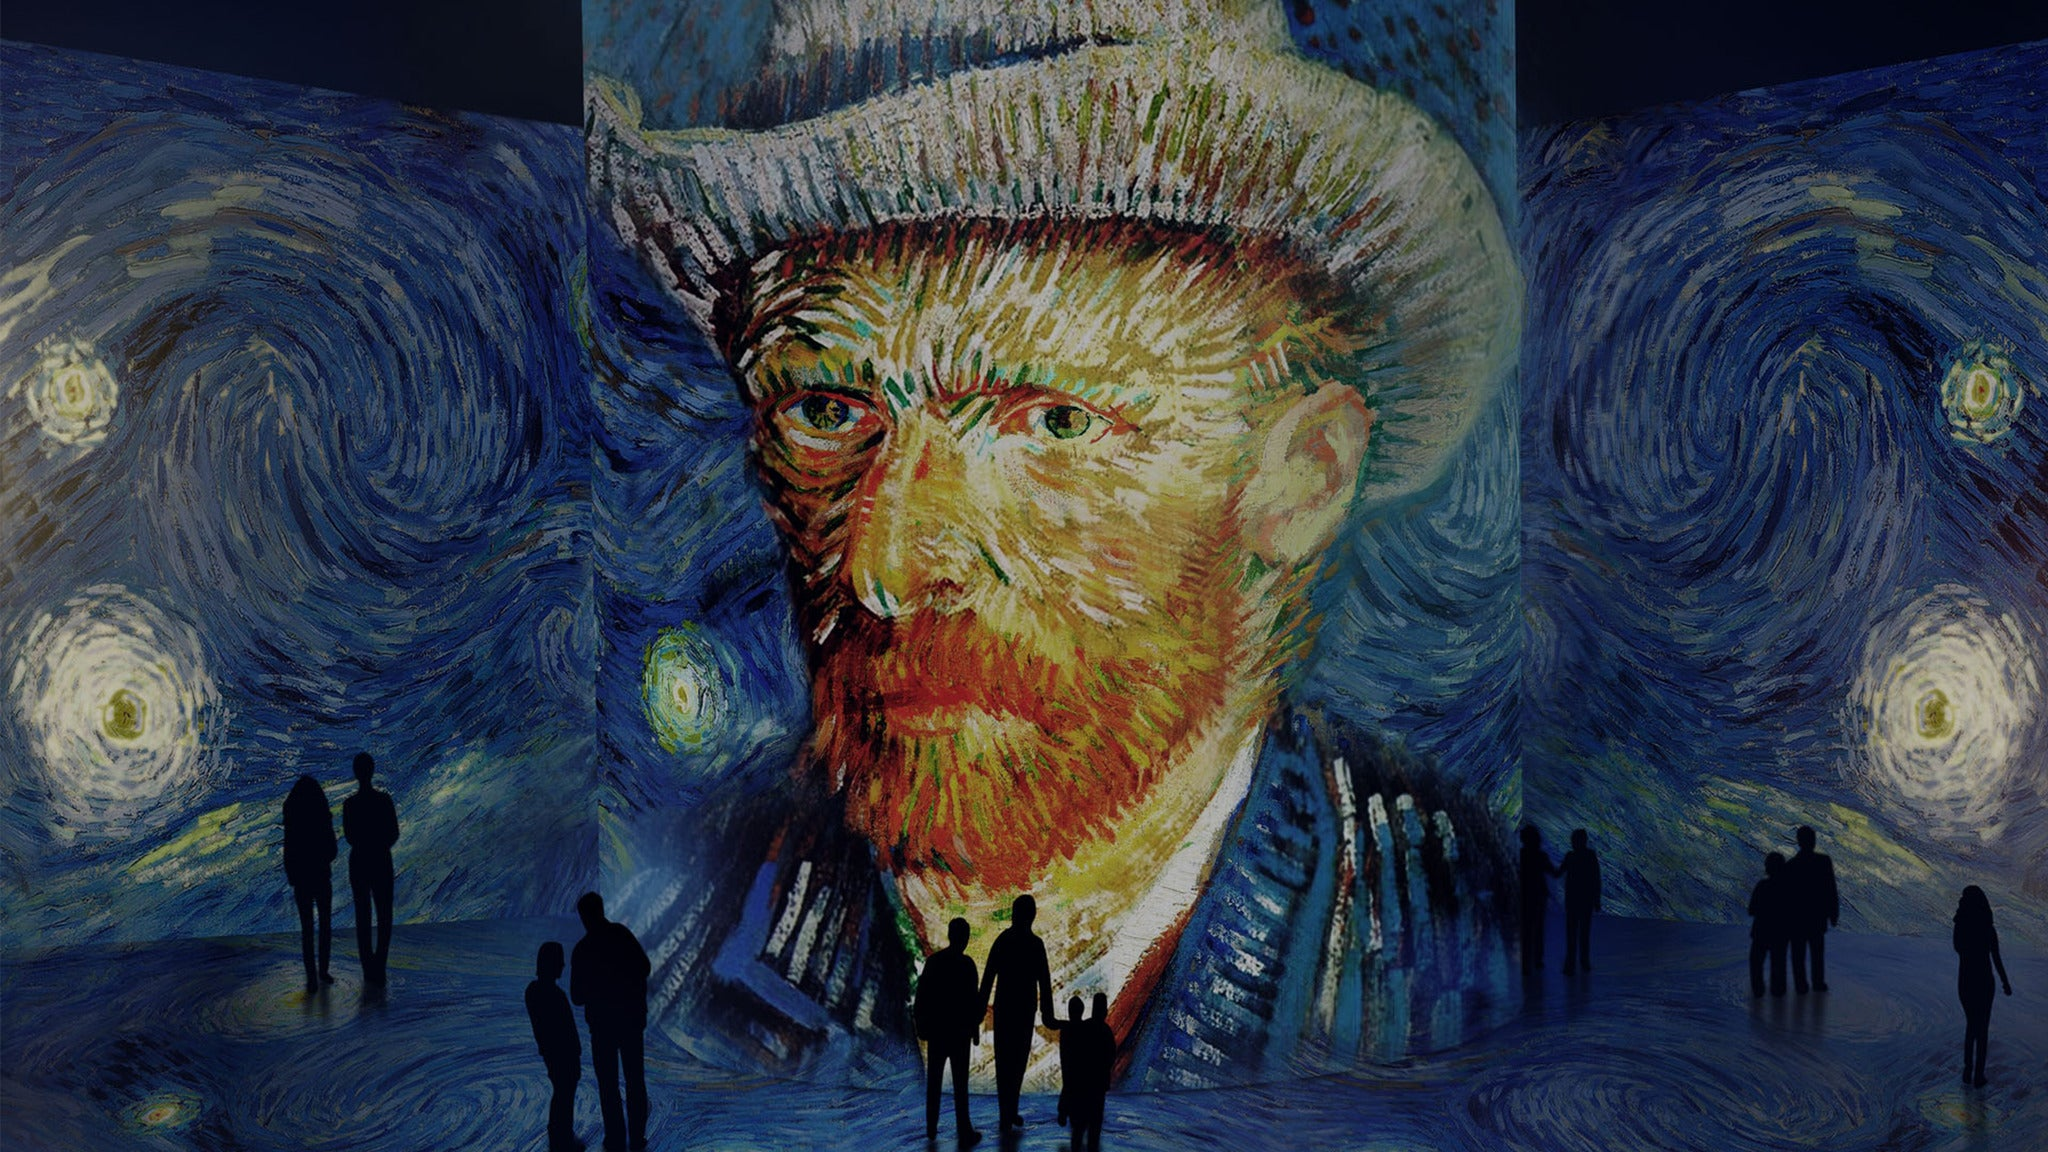 Immersive Van Gogh (Off-Peak) at SVN West San Francisco